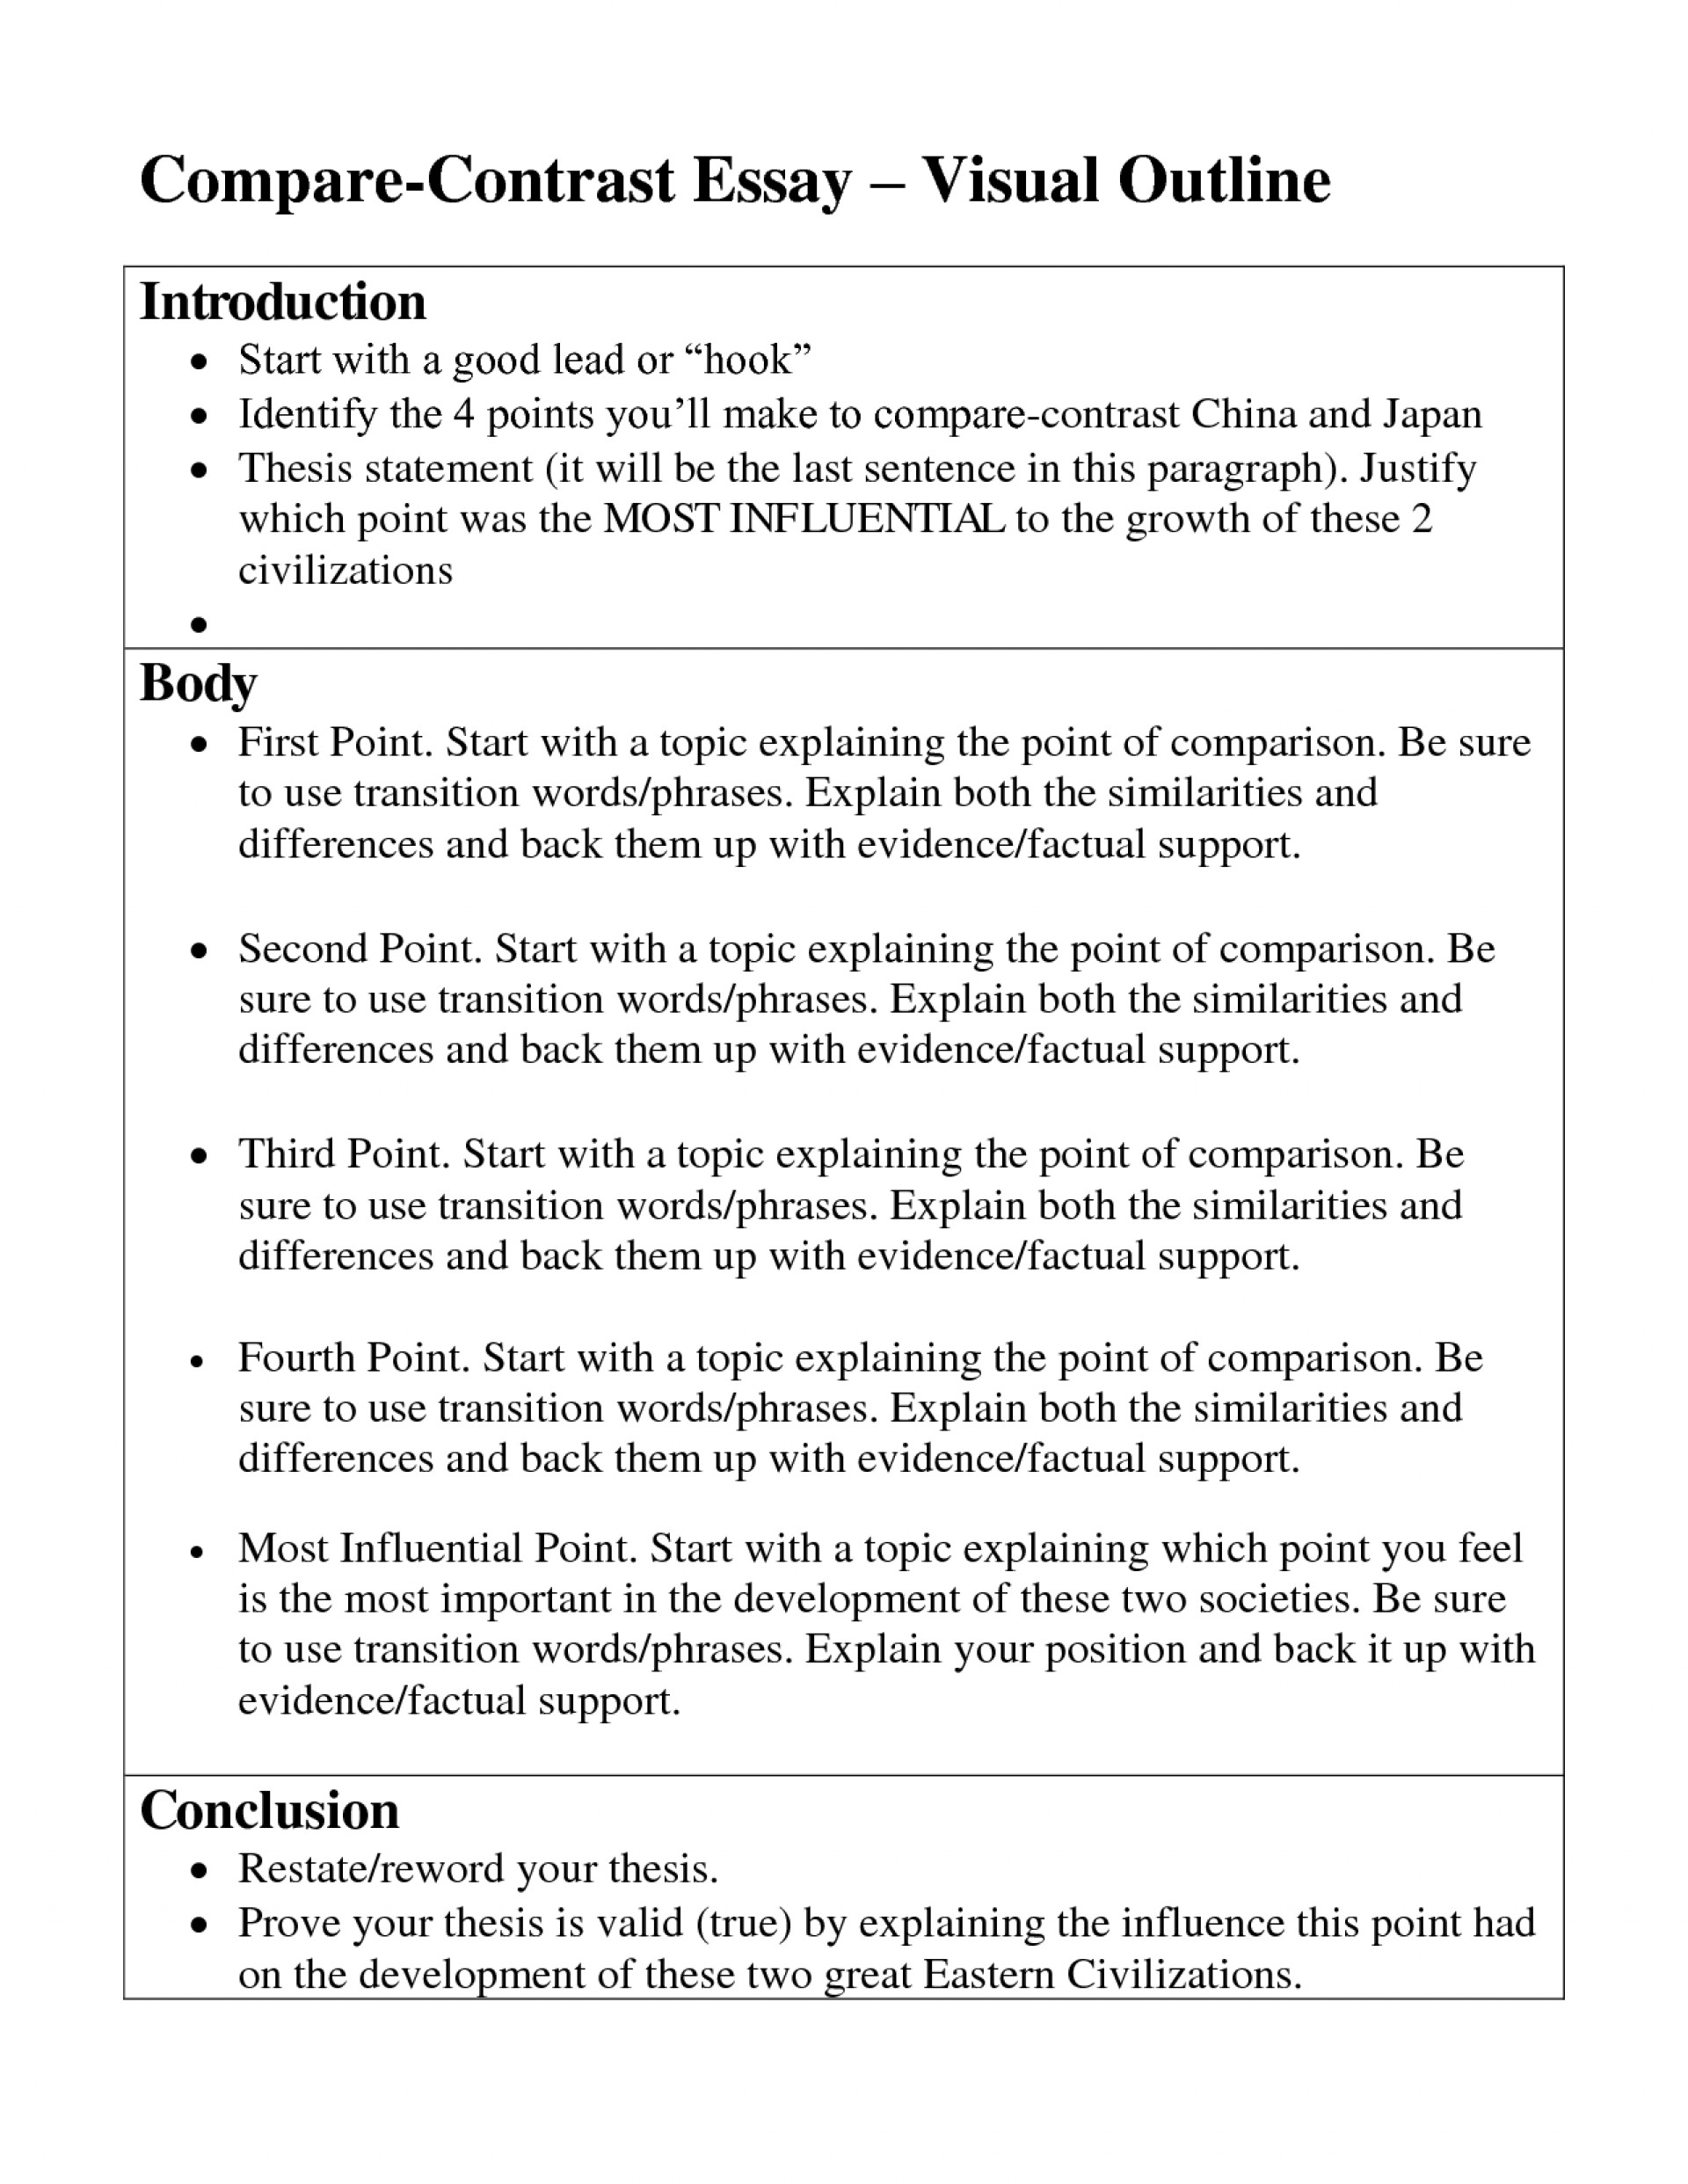 004 How To Write Compare And Contrast Essay Striking Block Method Conclusion 1920